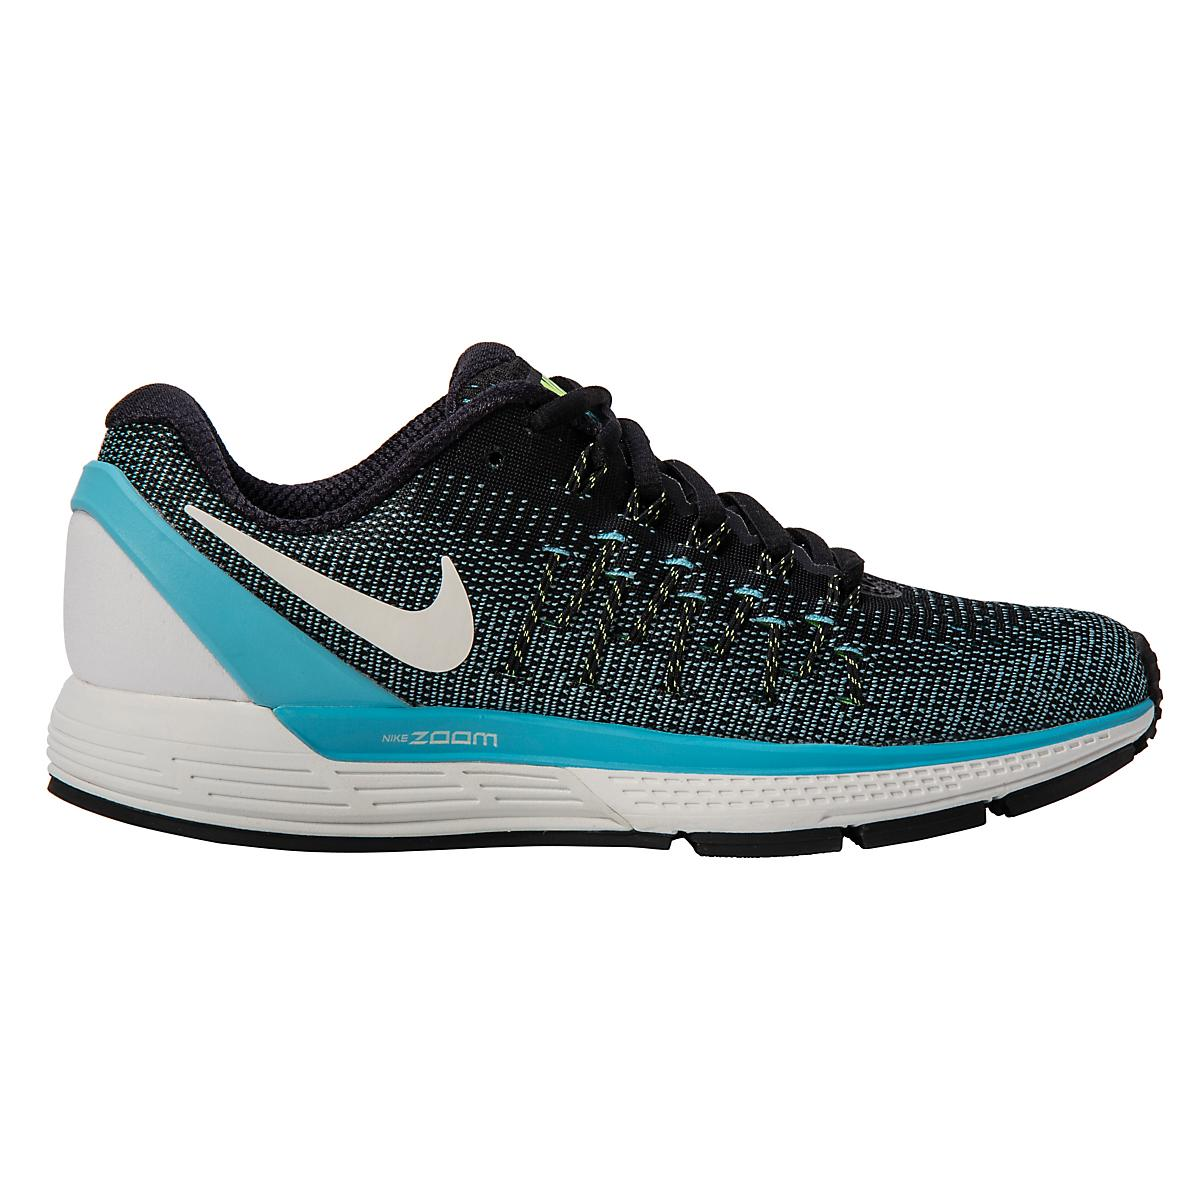 eb6539596d90 Womens Nike Air Zoom Odyssey 2 Running Shoe at Road Runner Sports